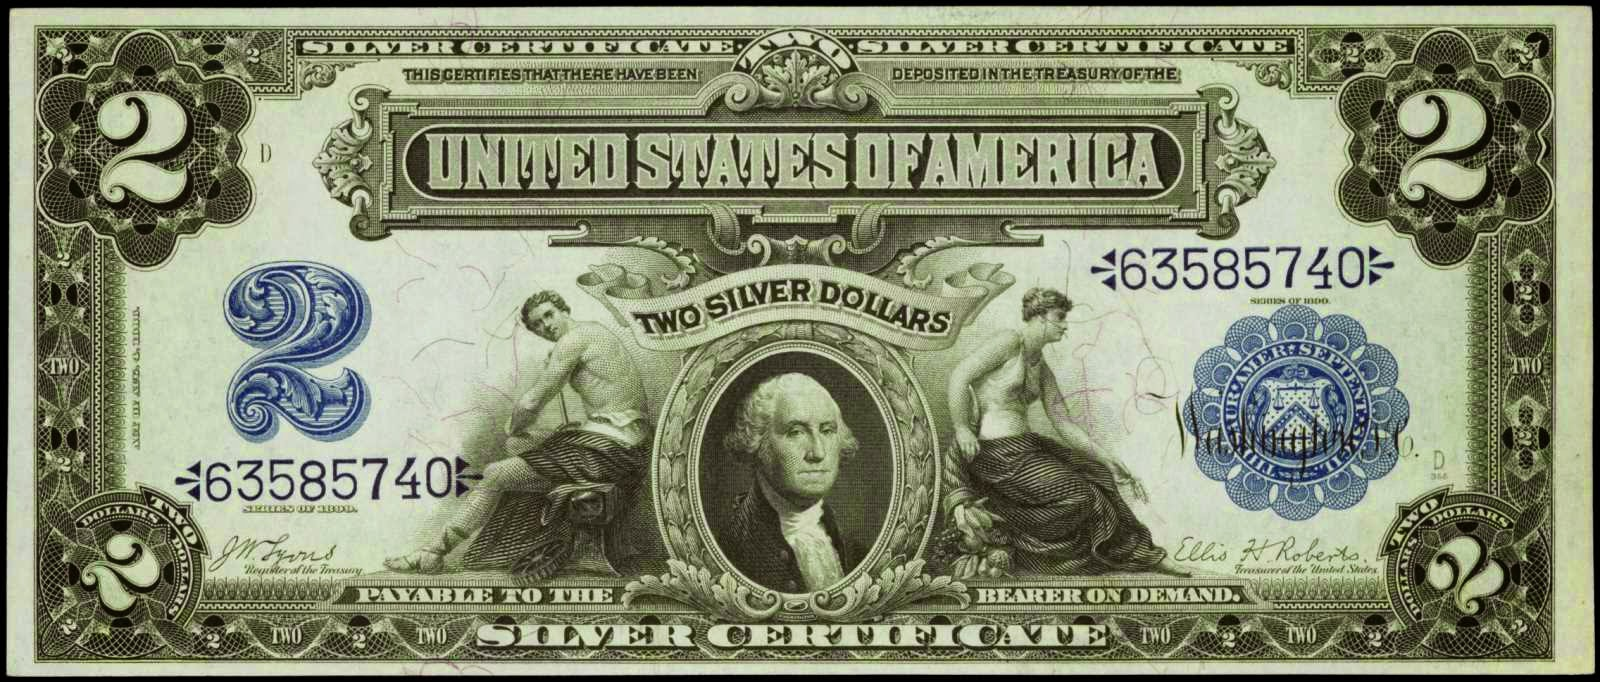 United States Paper Money 2 Dollar Silver Certificate 1899 George Washington